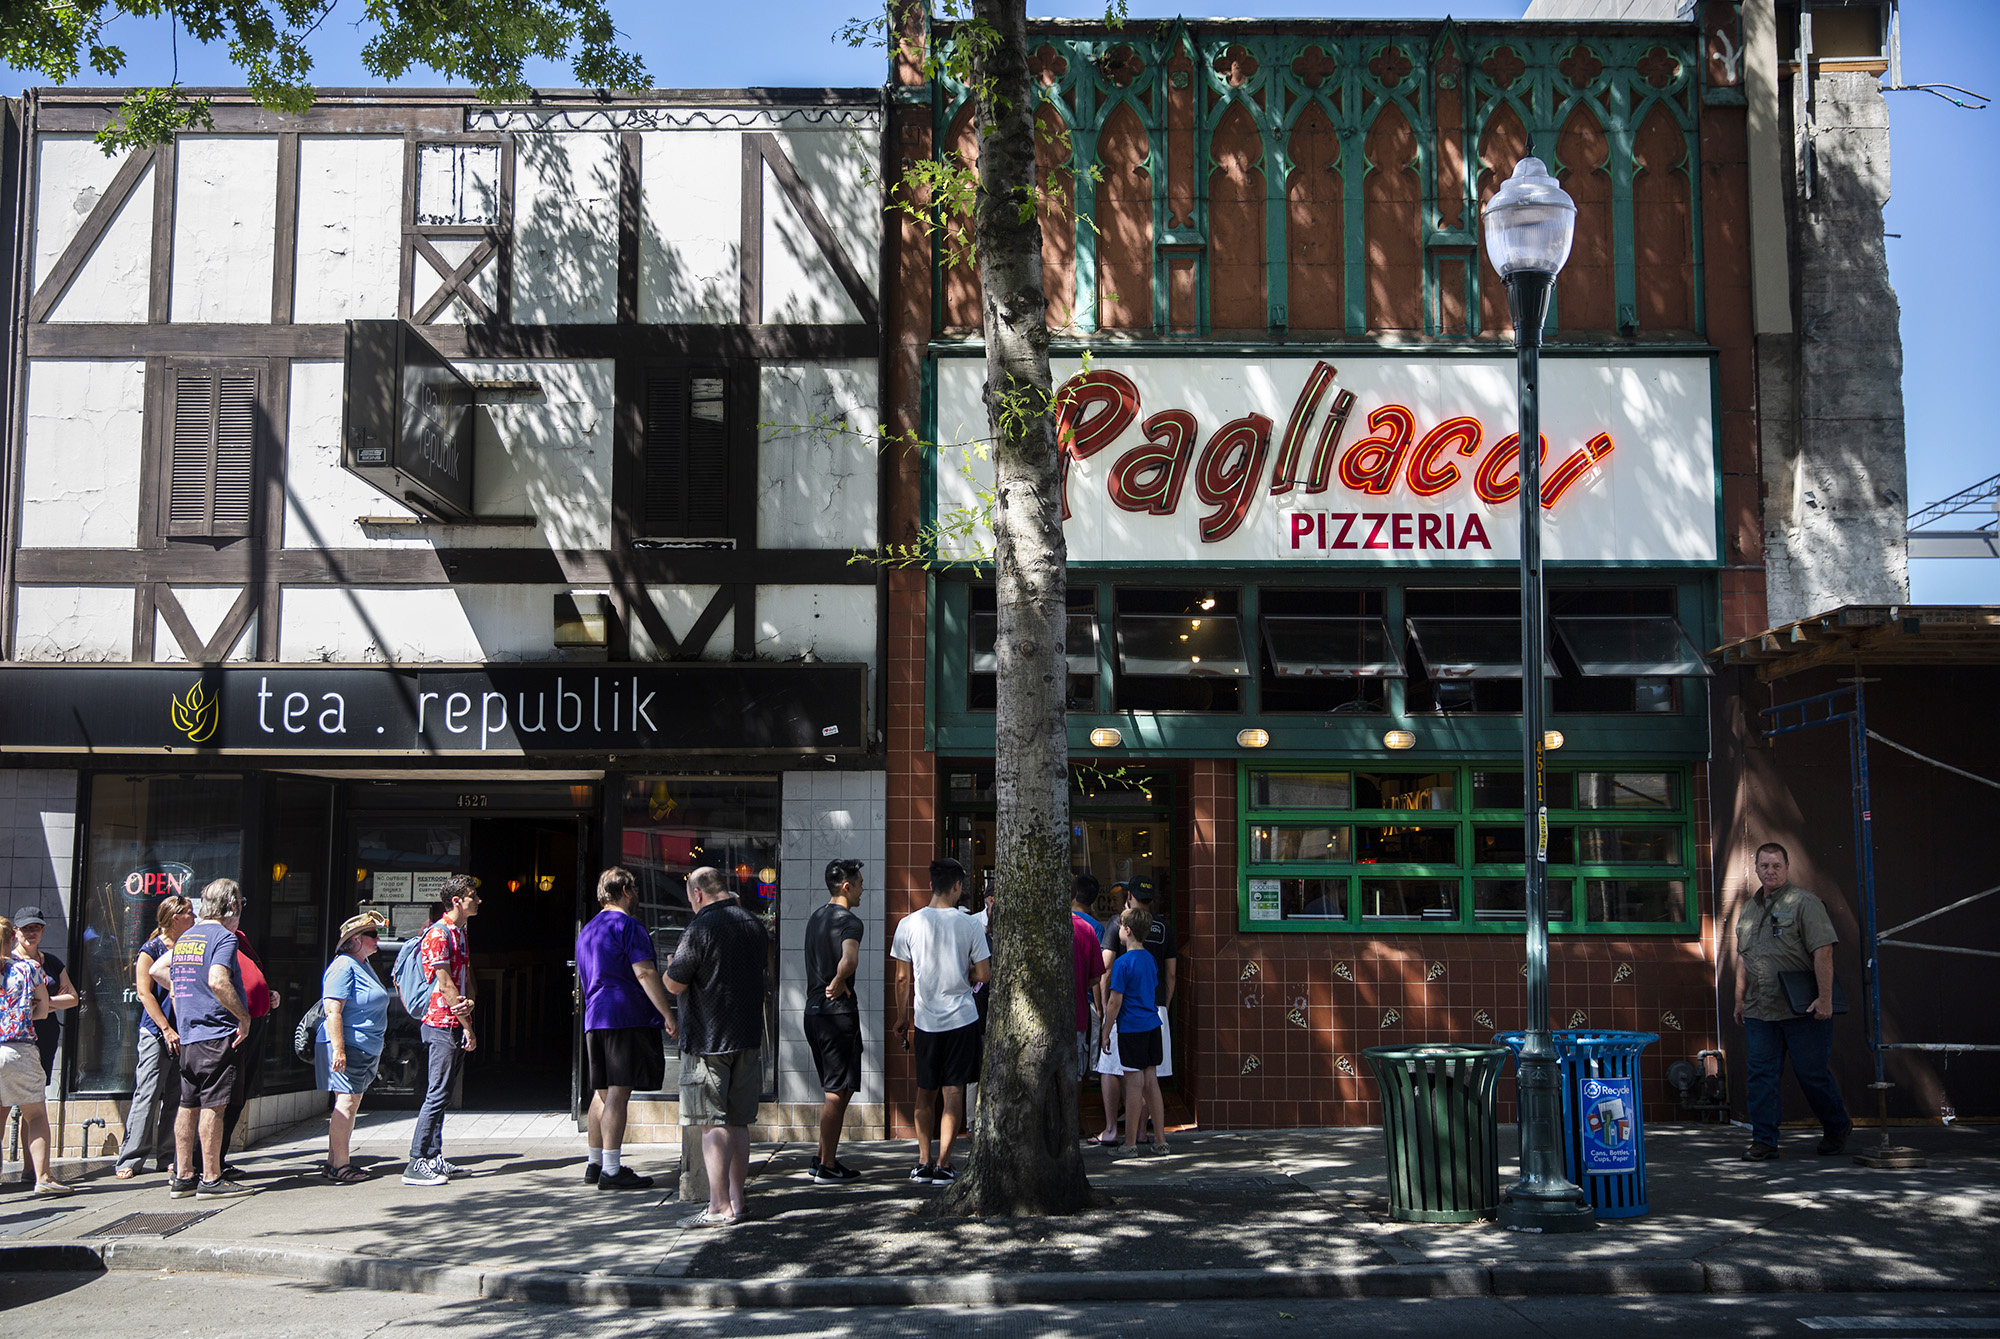 PAGLIACCI PIZZA, U DISTRICT PIZZA, PAGLIACCI CLOSES